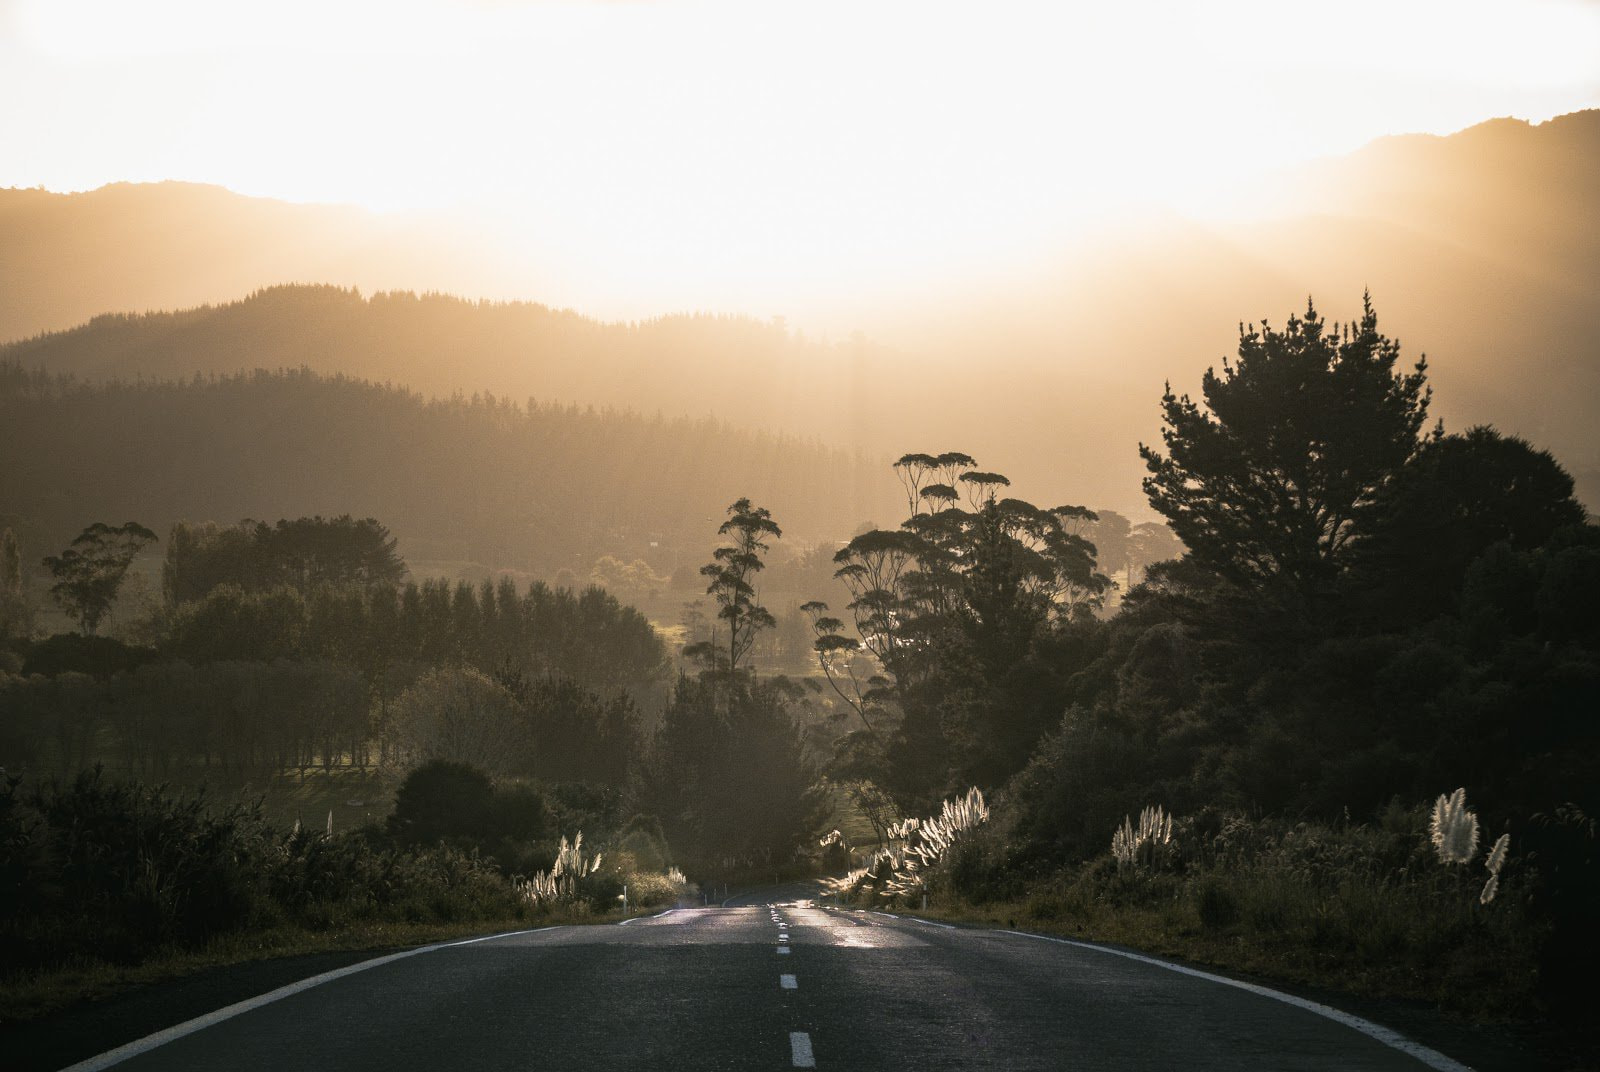 Road and forest during the golden hour by Tyler Lastovich